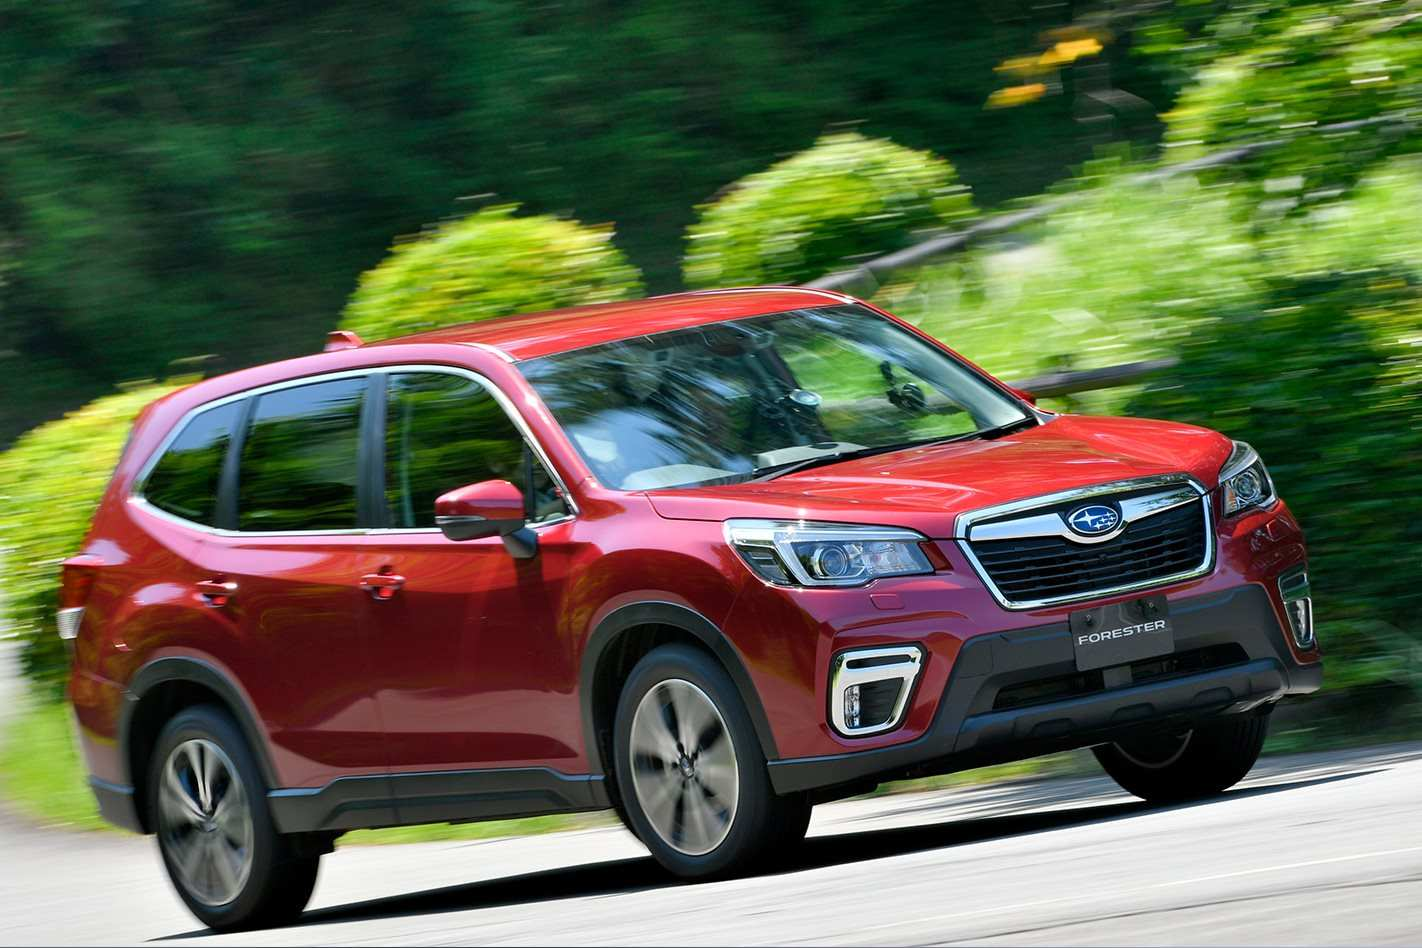 87 The Subaru Forester 2019 Hybrid Redesign for Subaru Forester 2019 Hybrid